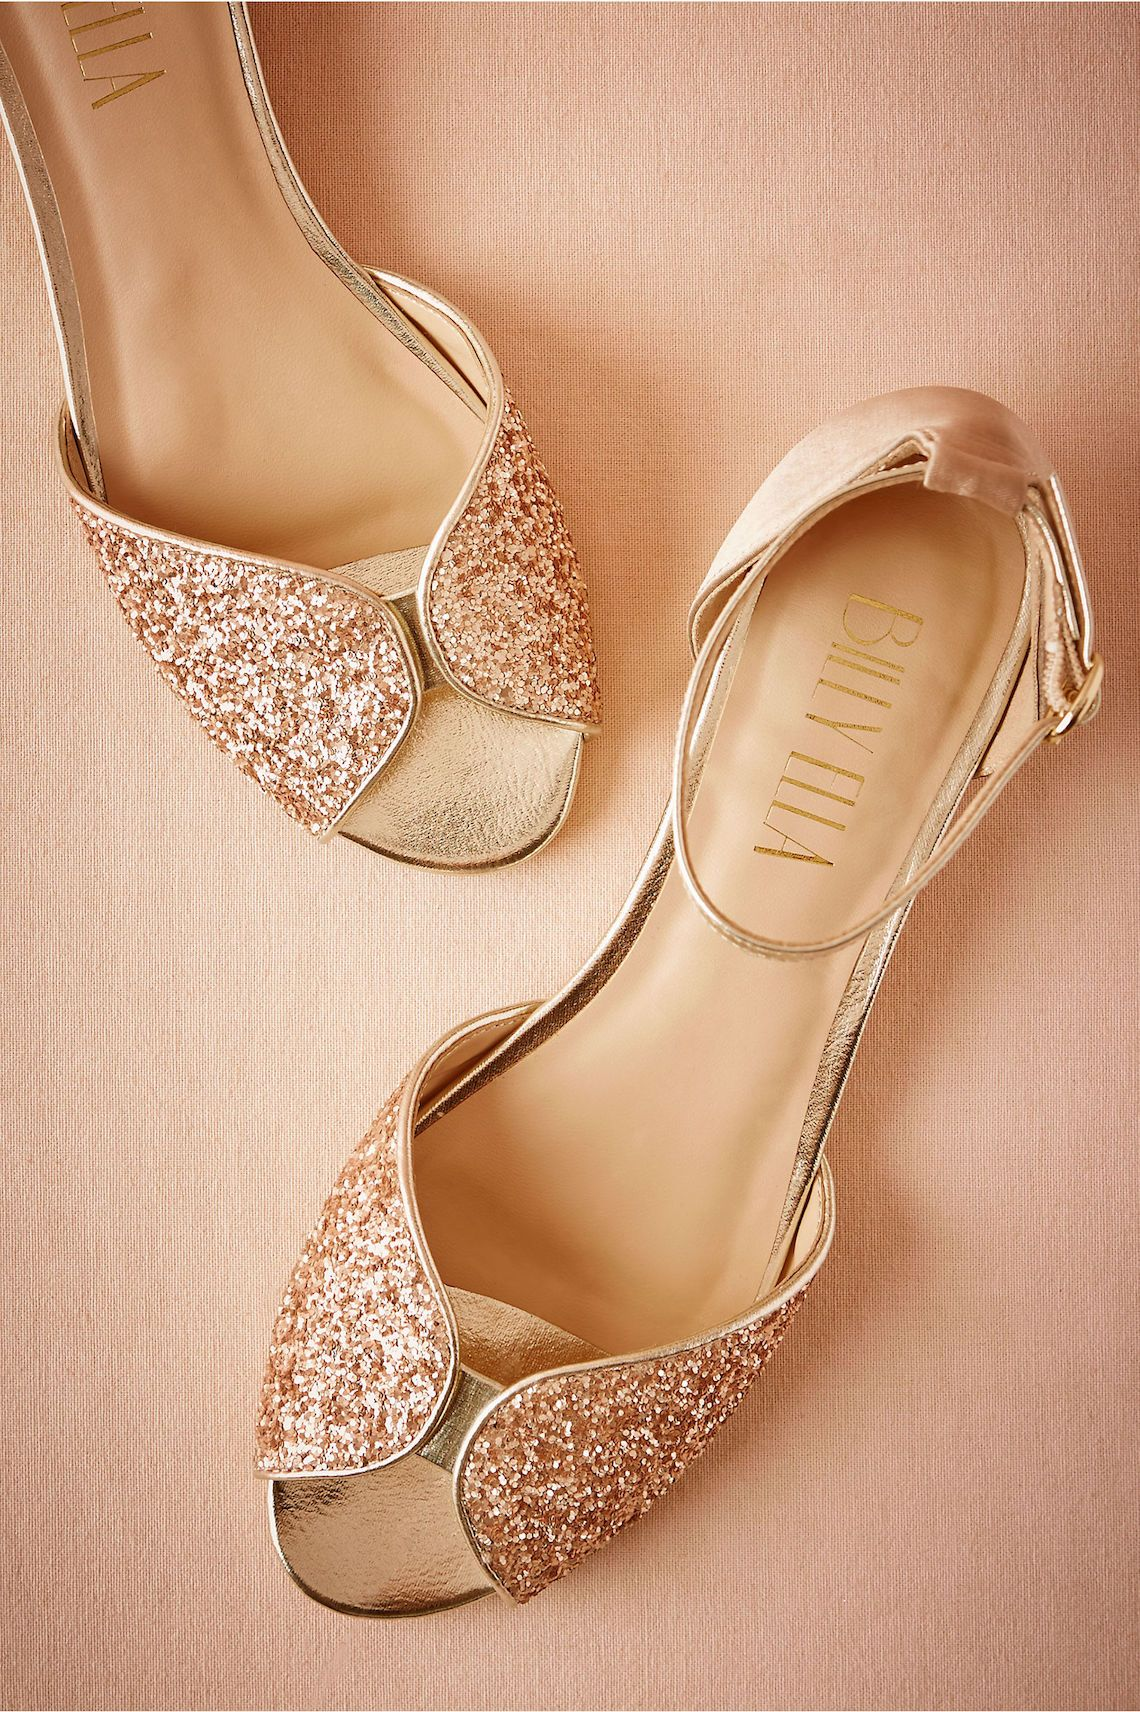 b5876a65c3f 10 Flat Wedding Shoes (That Are Just As Chic As Heels)